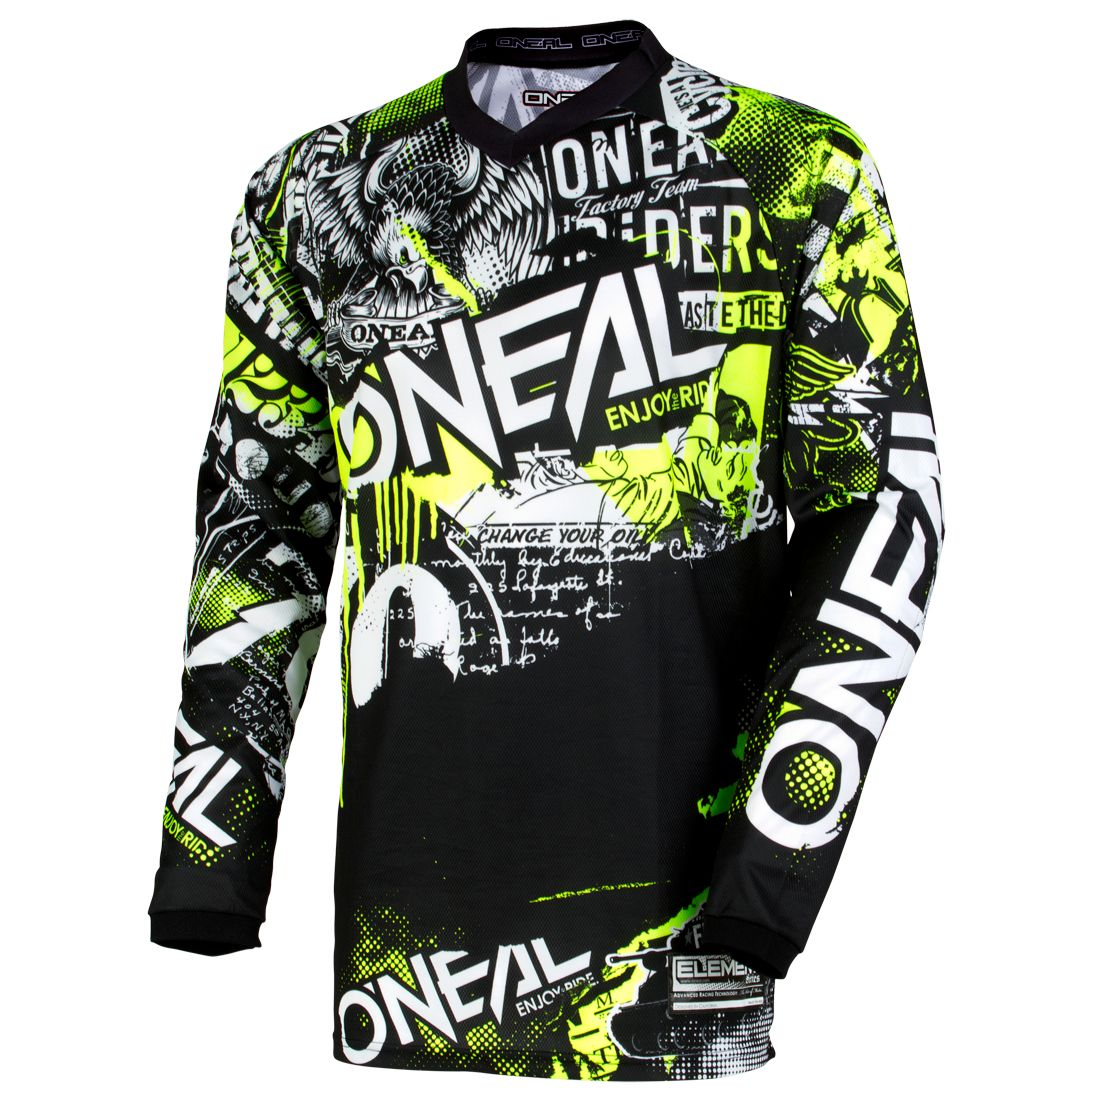 Maillot cross O'Neal ELEMENT YOUTH - ATTACK - BLACK HI-VIS 2019